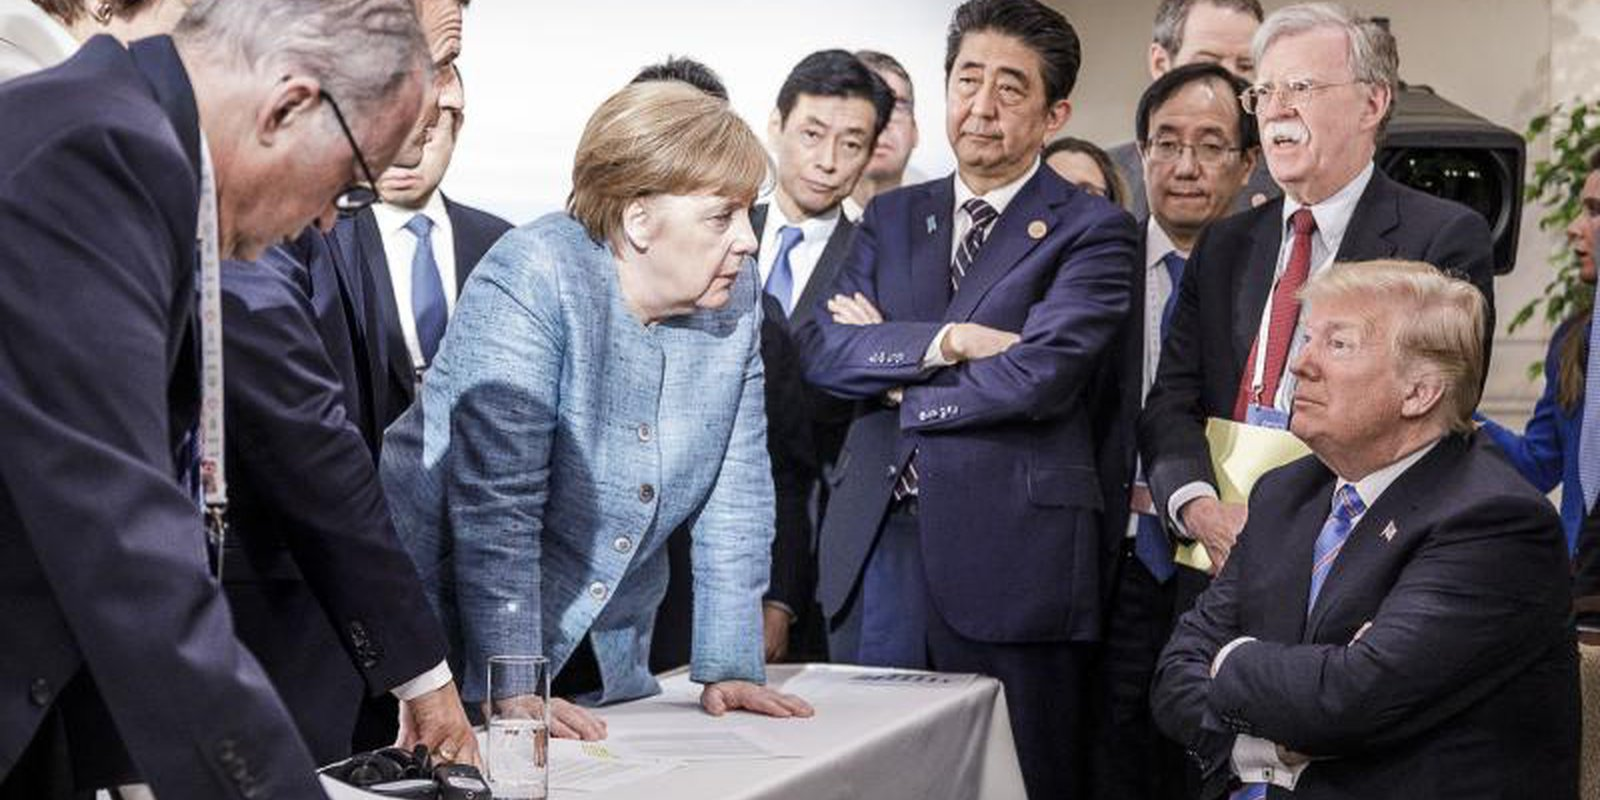 Angela Merkel and other world leaders deliberate with US president Donald Trump at the G7 summit in 2018. Photo by Jesco Denzel /Bundesregierung via Getty Images.